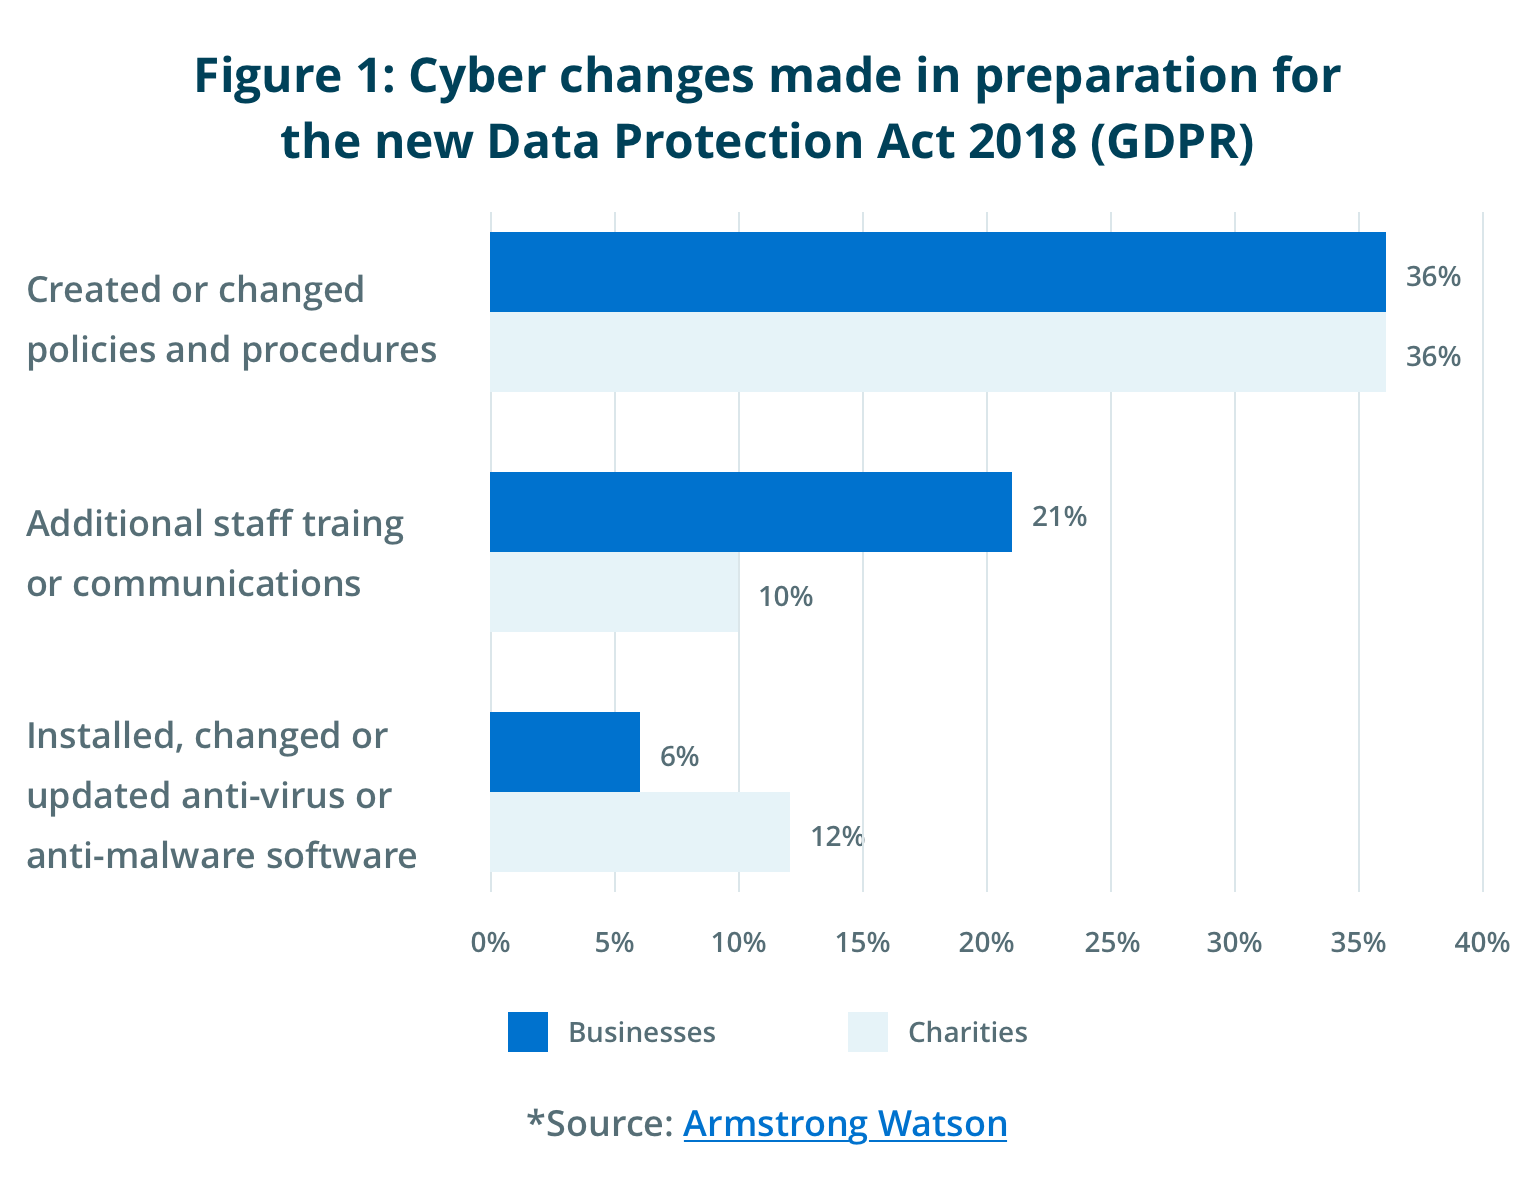 Cyber changes made in preparation for the new Data Protection Act 2018 (GDPR)